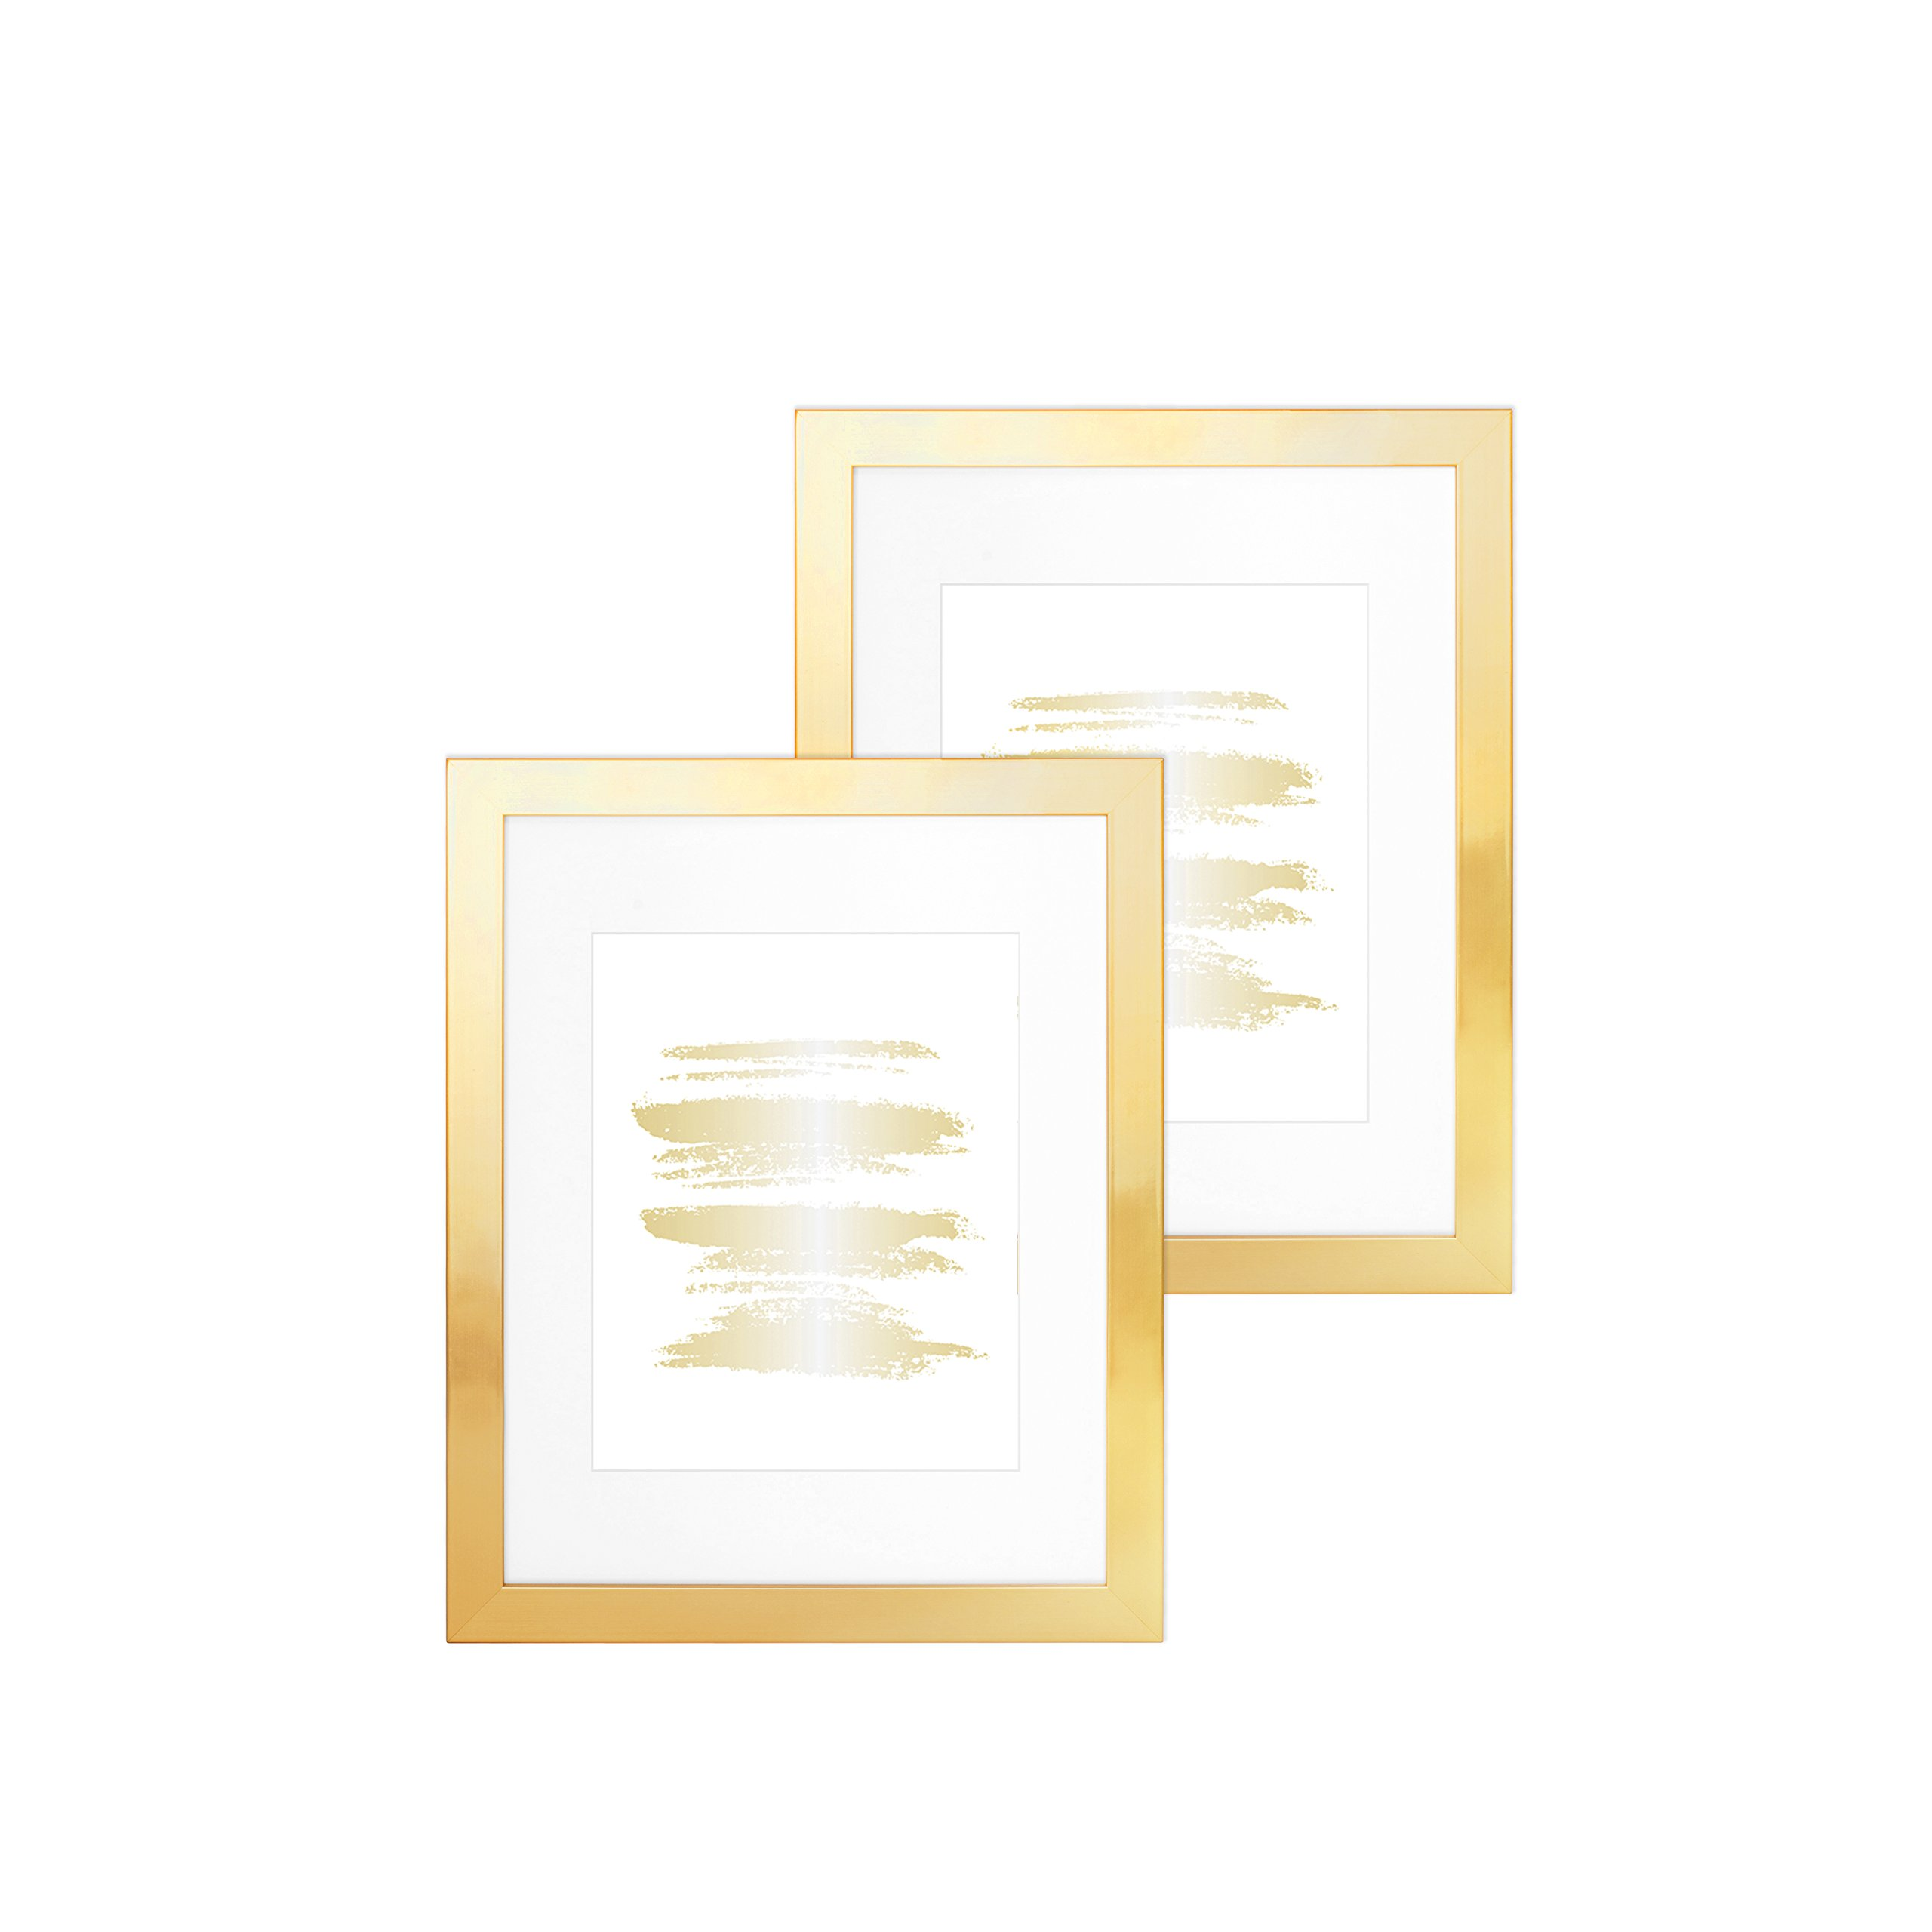 Parkwood Flat Basic- Set of 2, 11x14 Yellow Gold